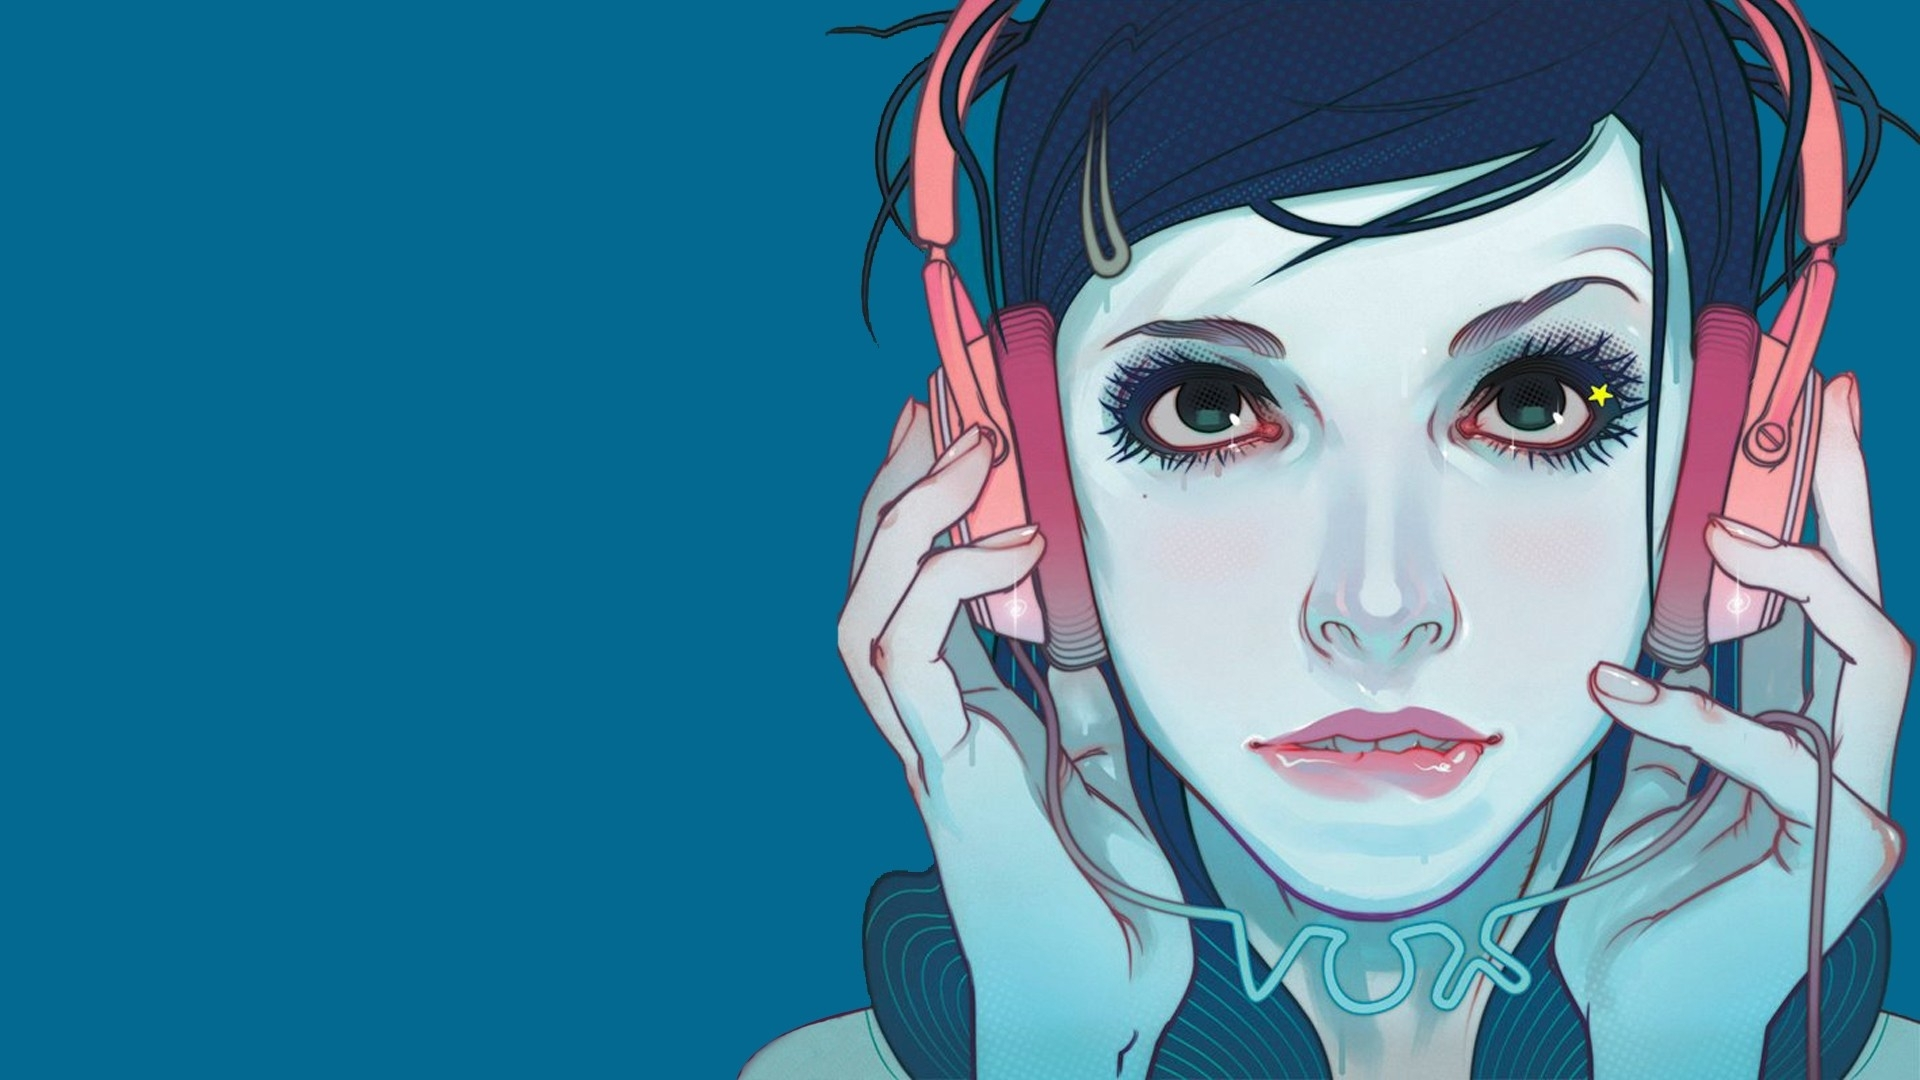 Headphone Girl Art